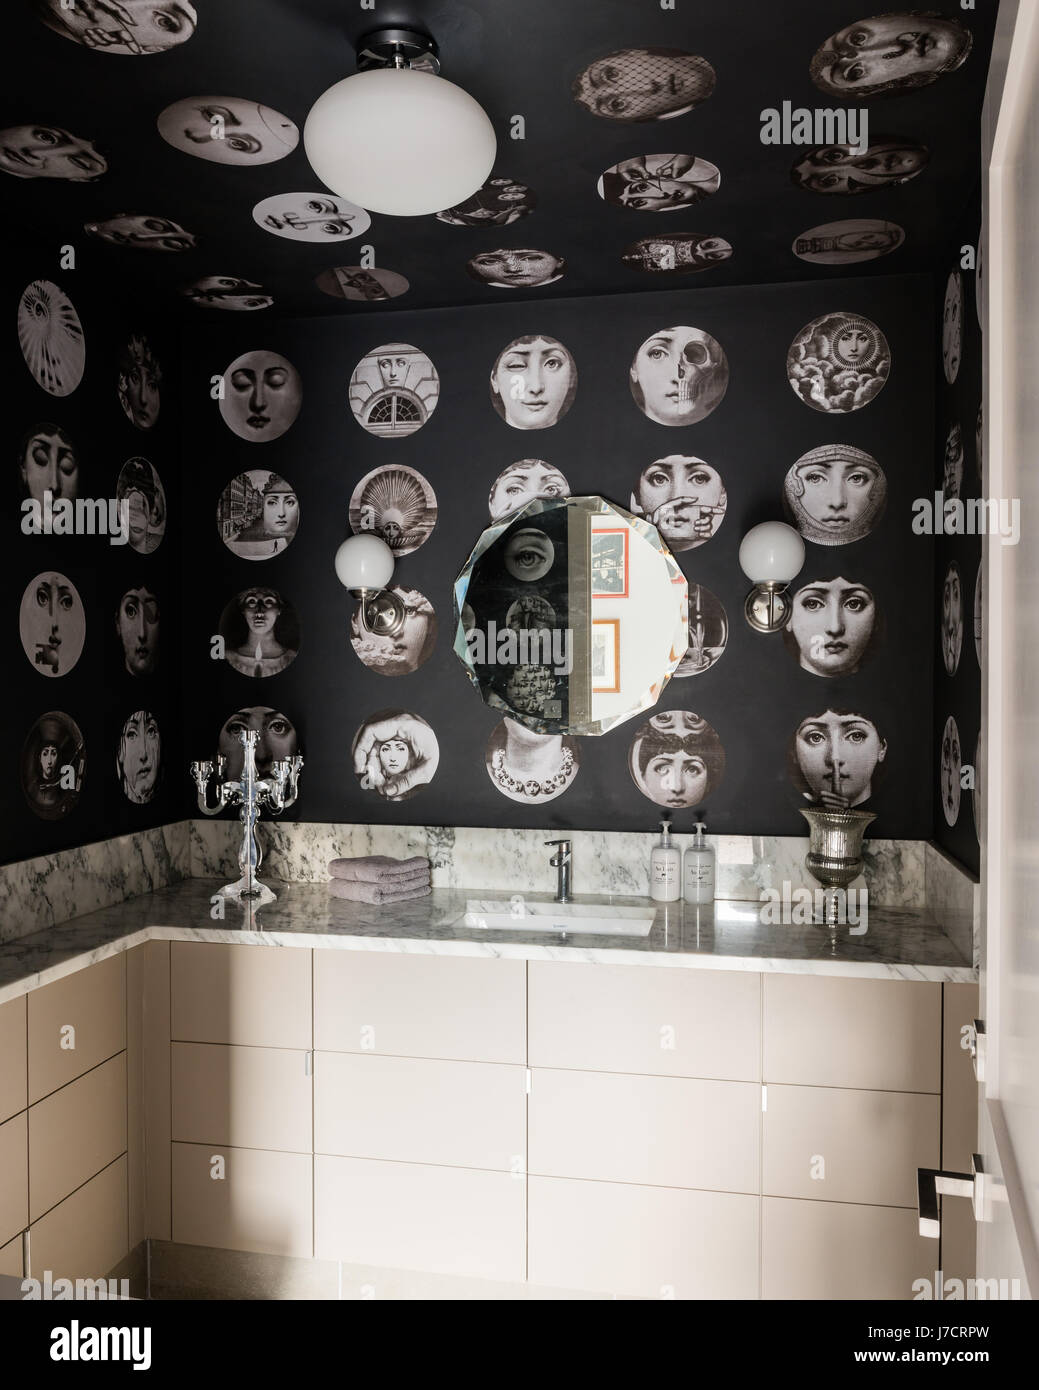 fornasetti wallpaper. Black Bedroom Furniture Sets. Home Design Ideas